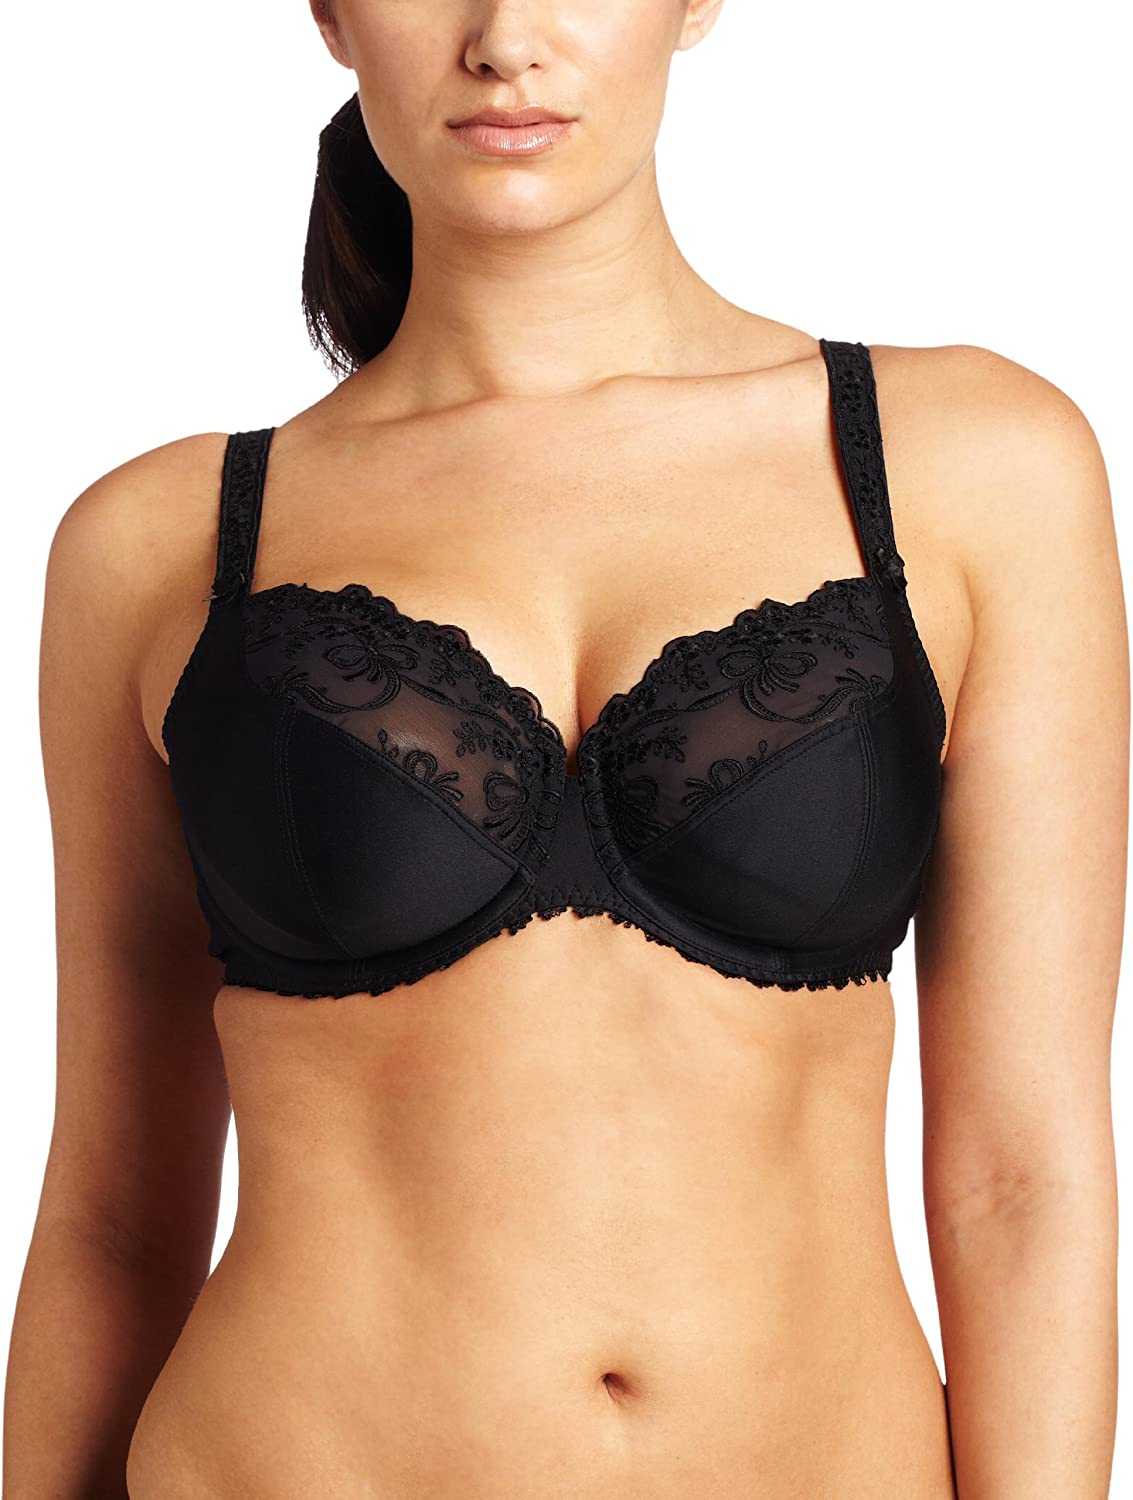 Anita pink Faia 5648001 Scarlett Black NonPadded Wired Balcony Bra